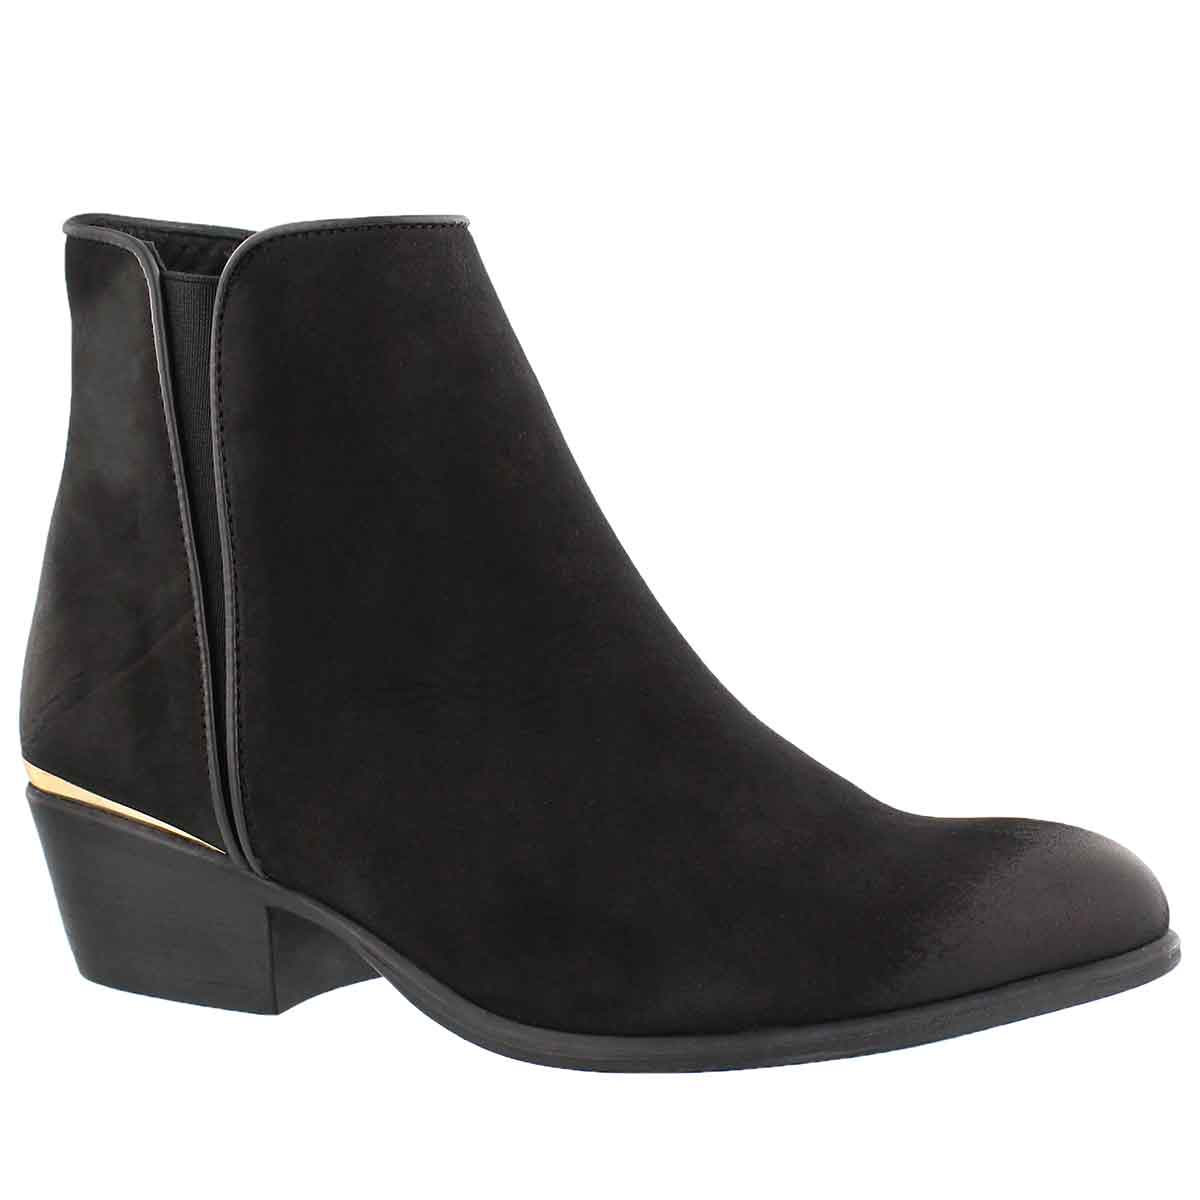 Women's NOBLE black ankle booties